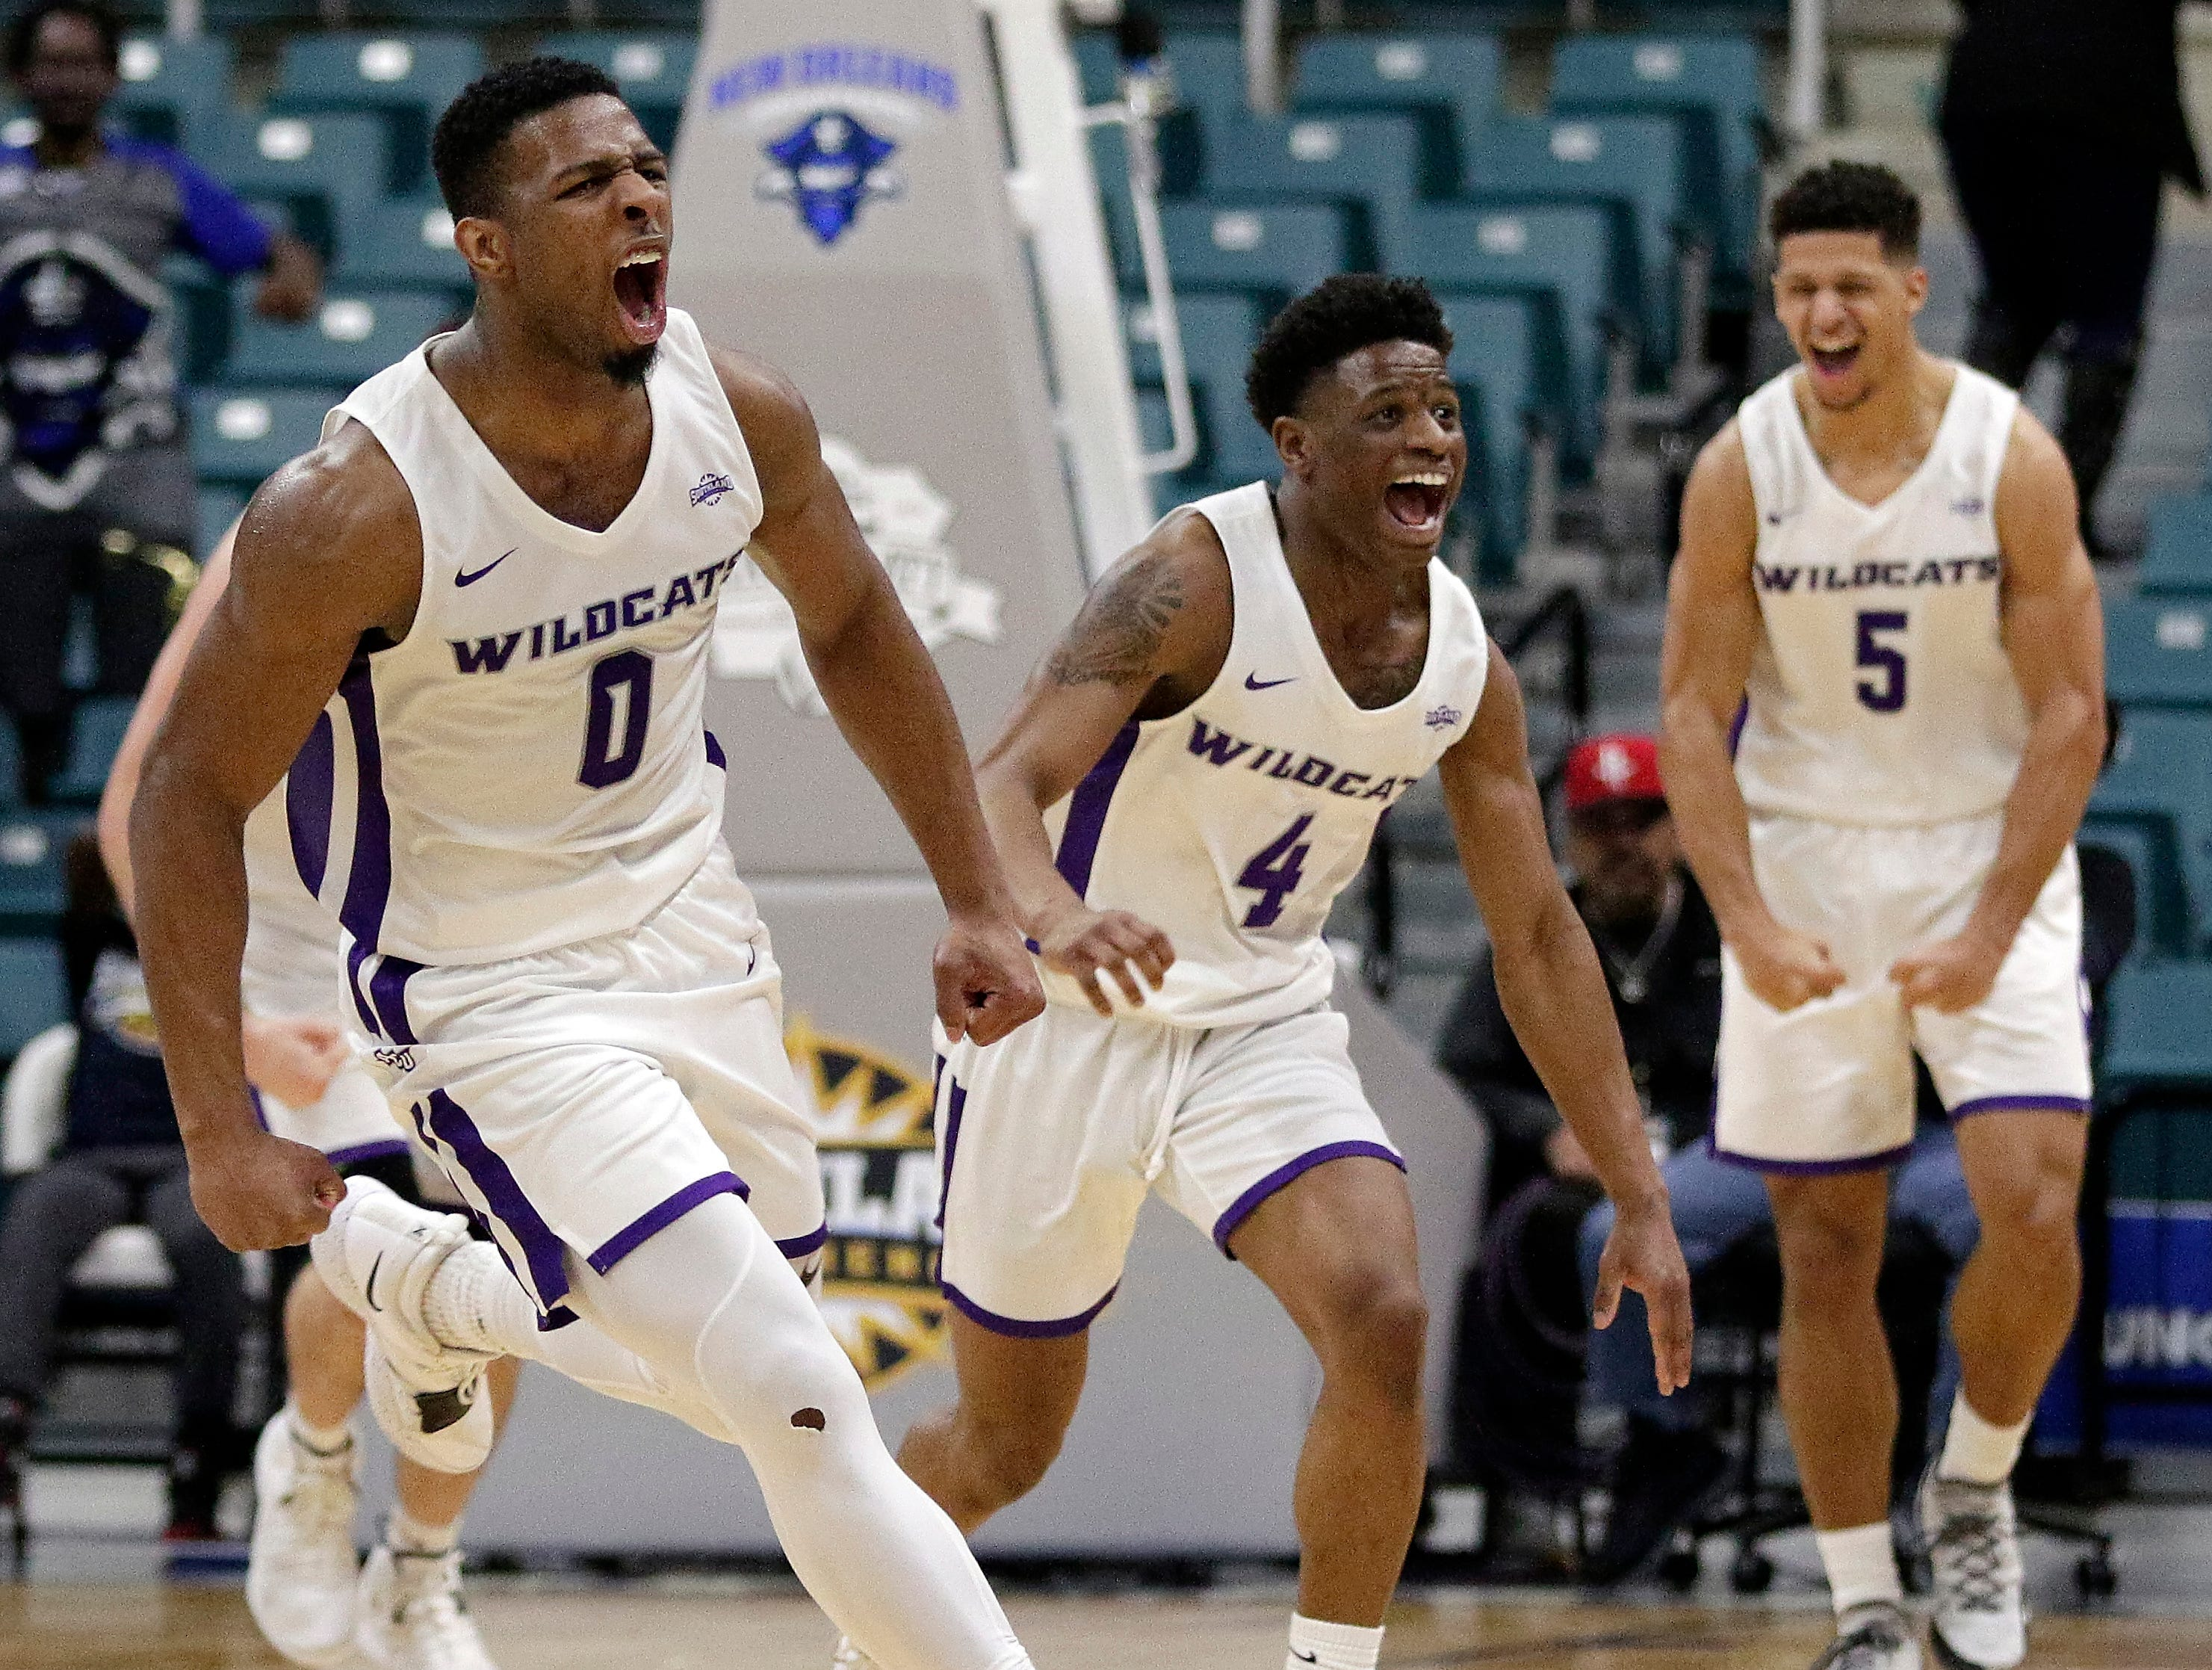 Abilene Christian guard Jaylen Franklin (0), guard Damien Daniels (4) and guard Payten Ricks (5) celebrate the team's lead in the final minute of an NCAA college basketball game against New Orleans for the Southland Conference men's tournament title Saturday, March 16, 2019, in Katy, Texas.